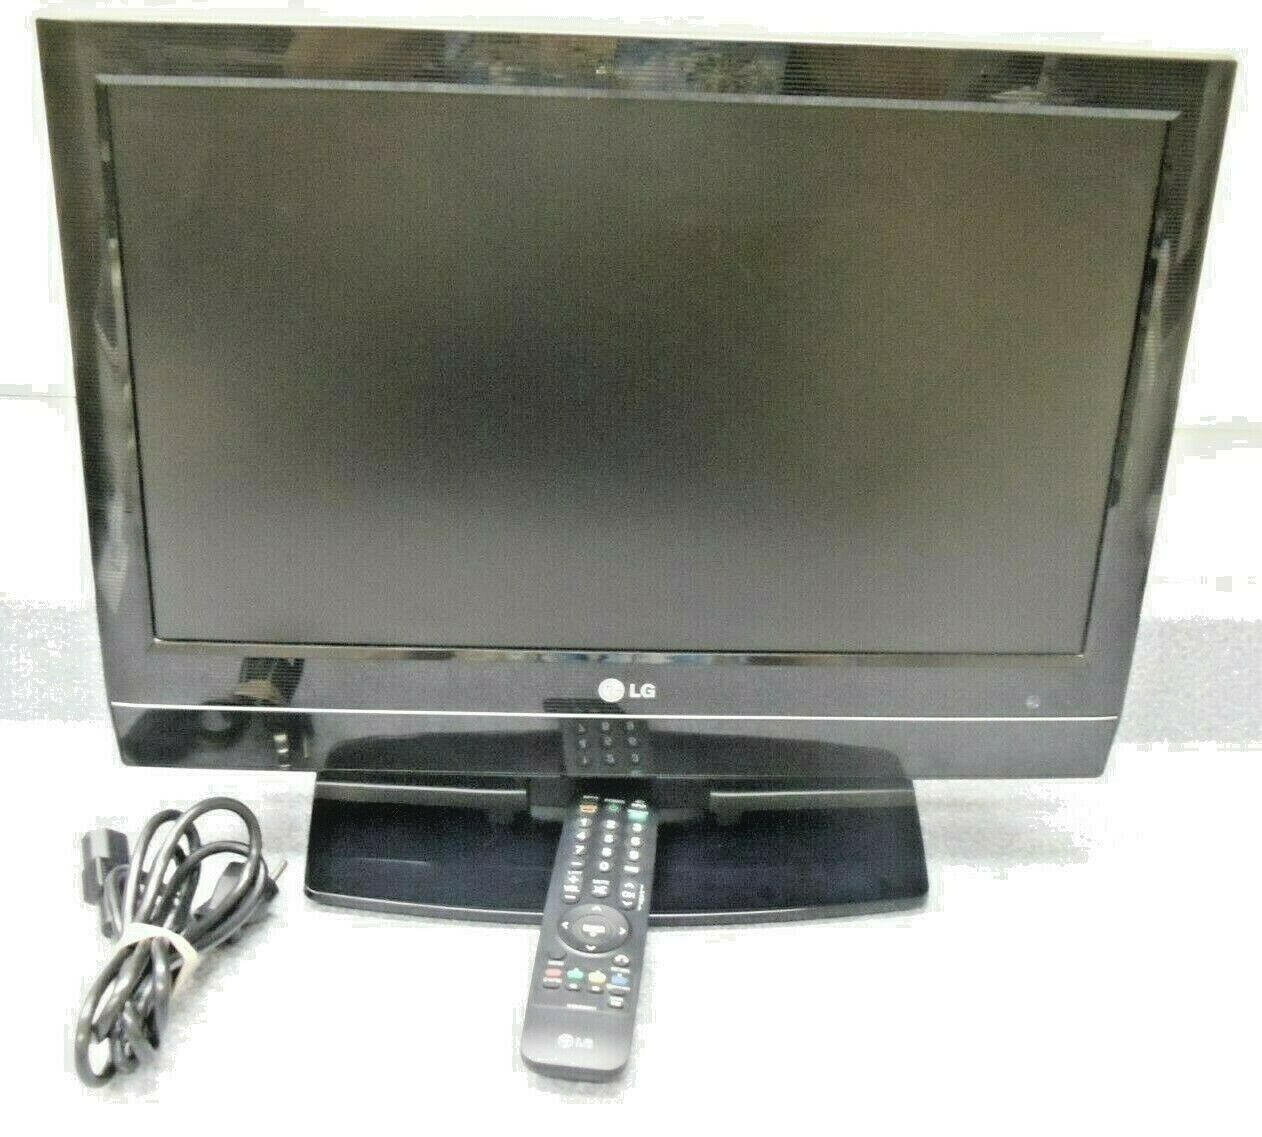 "LG 20LS7D 20"" 720p HD LCD Television w/Remote Manual on CD"